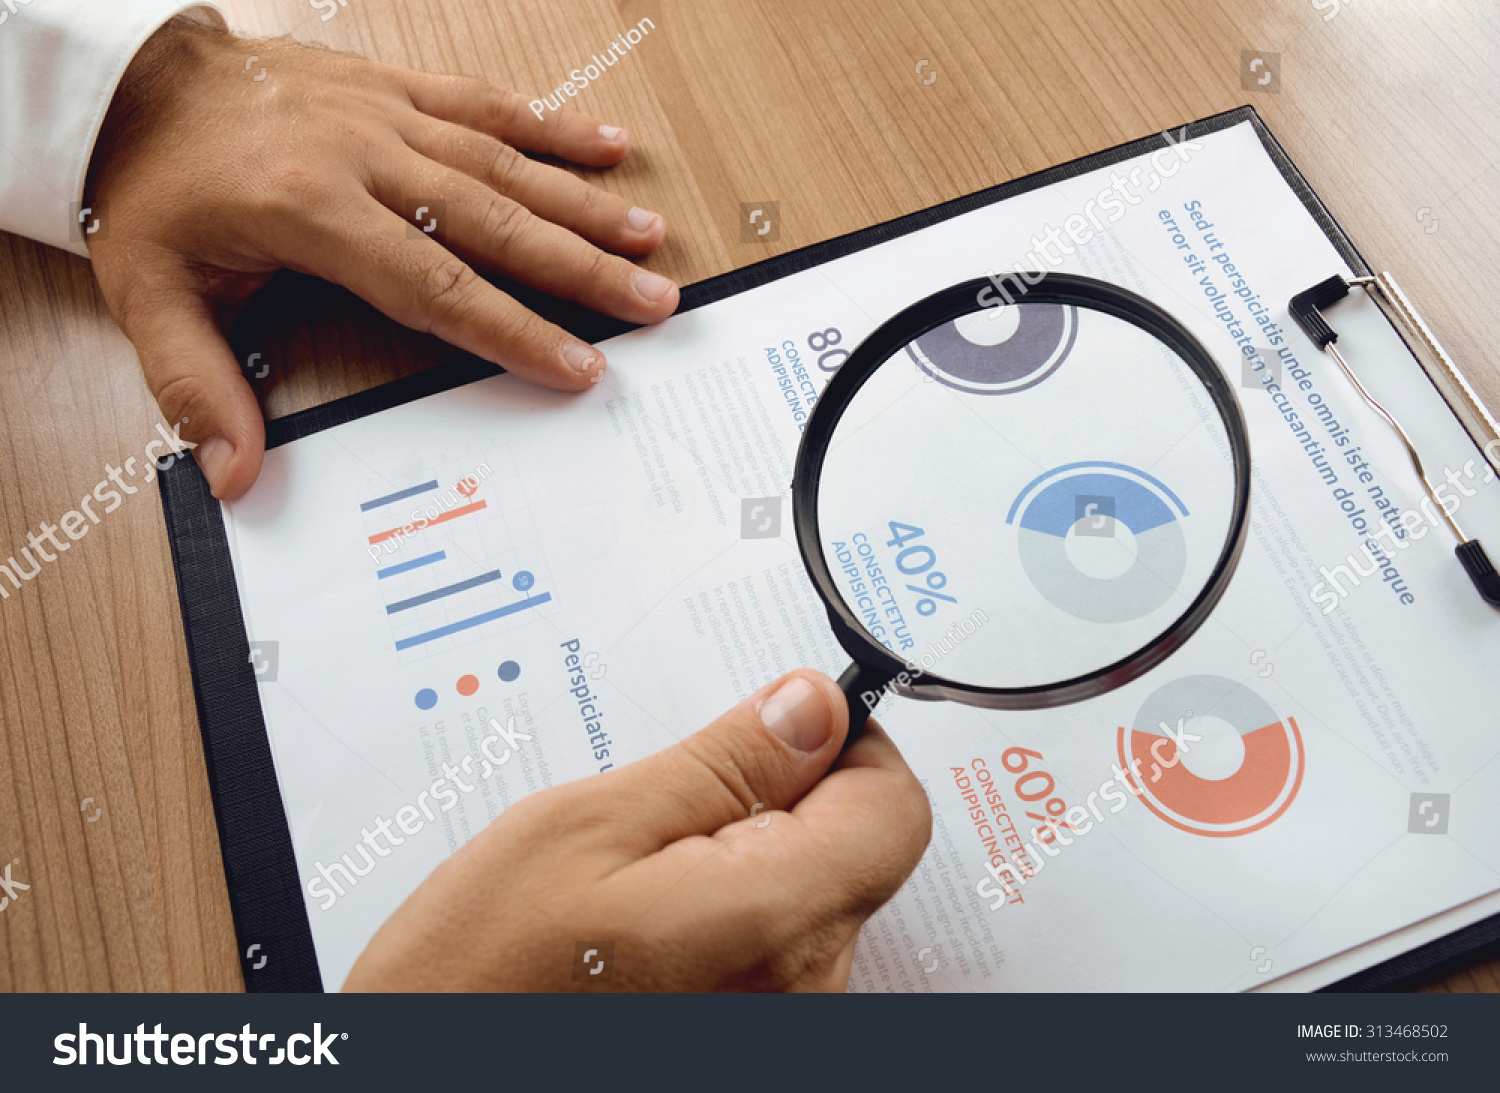 Technology Management Image: Market Research Businessman Hand Holding Magnifier Stock